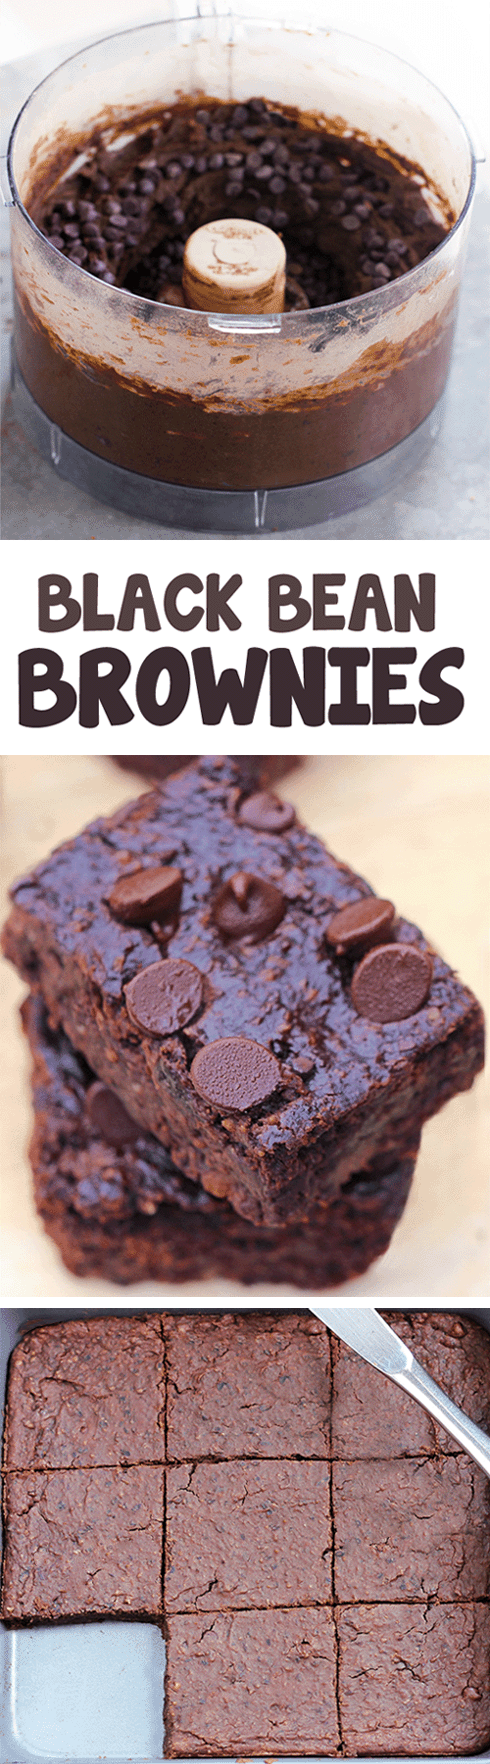 The Best Black Bean Brownies Recipe